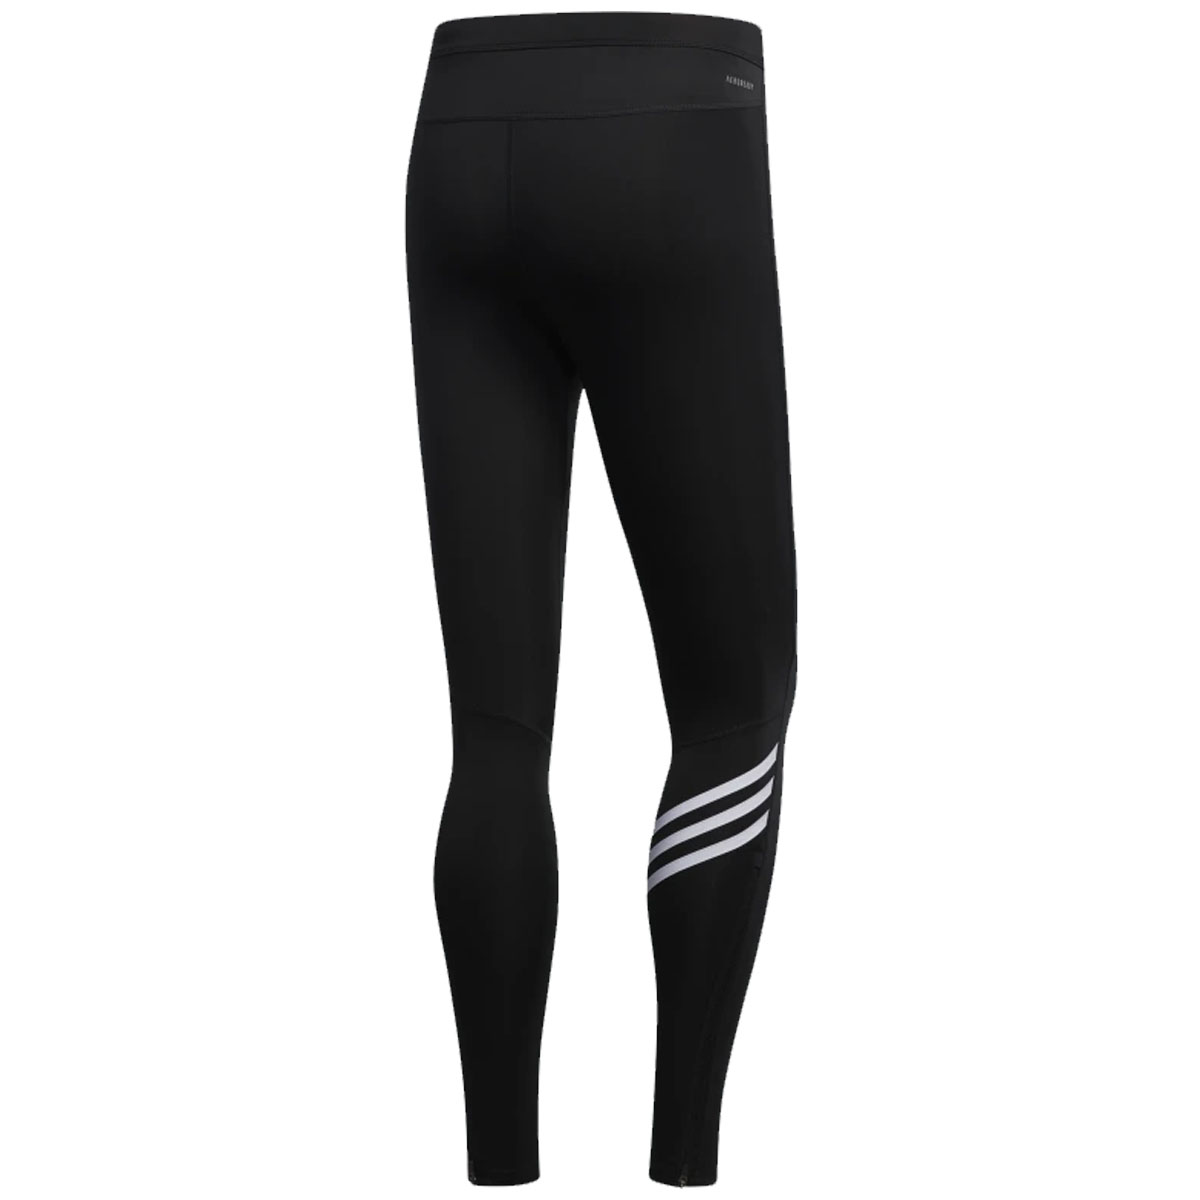 Adidas Run It 3 Stripes legging